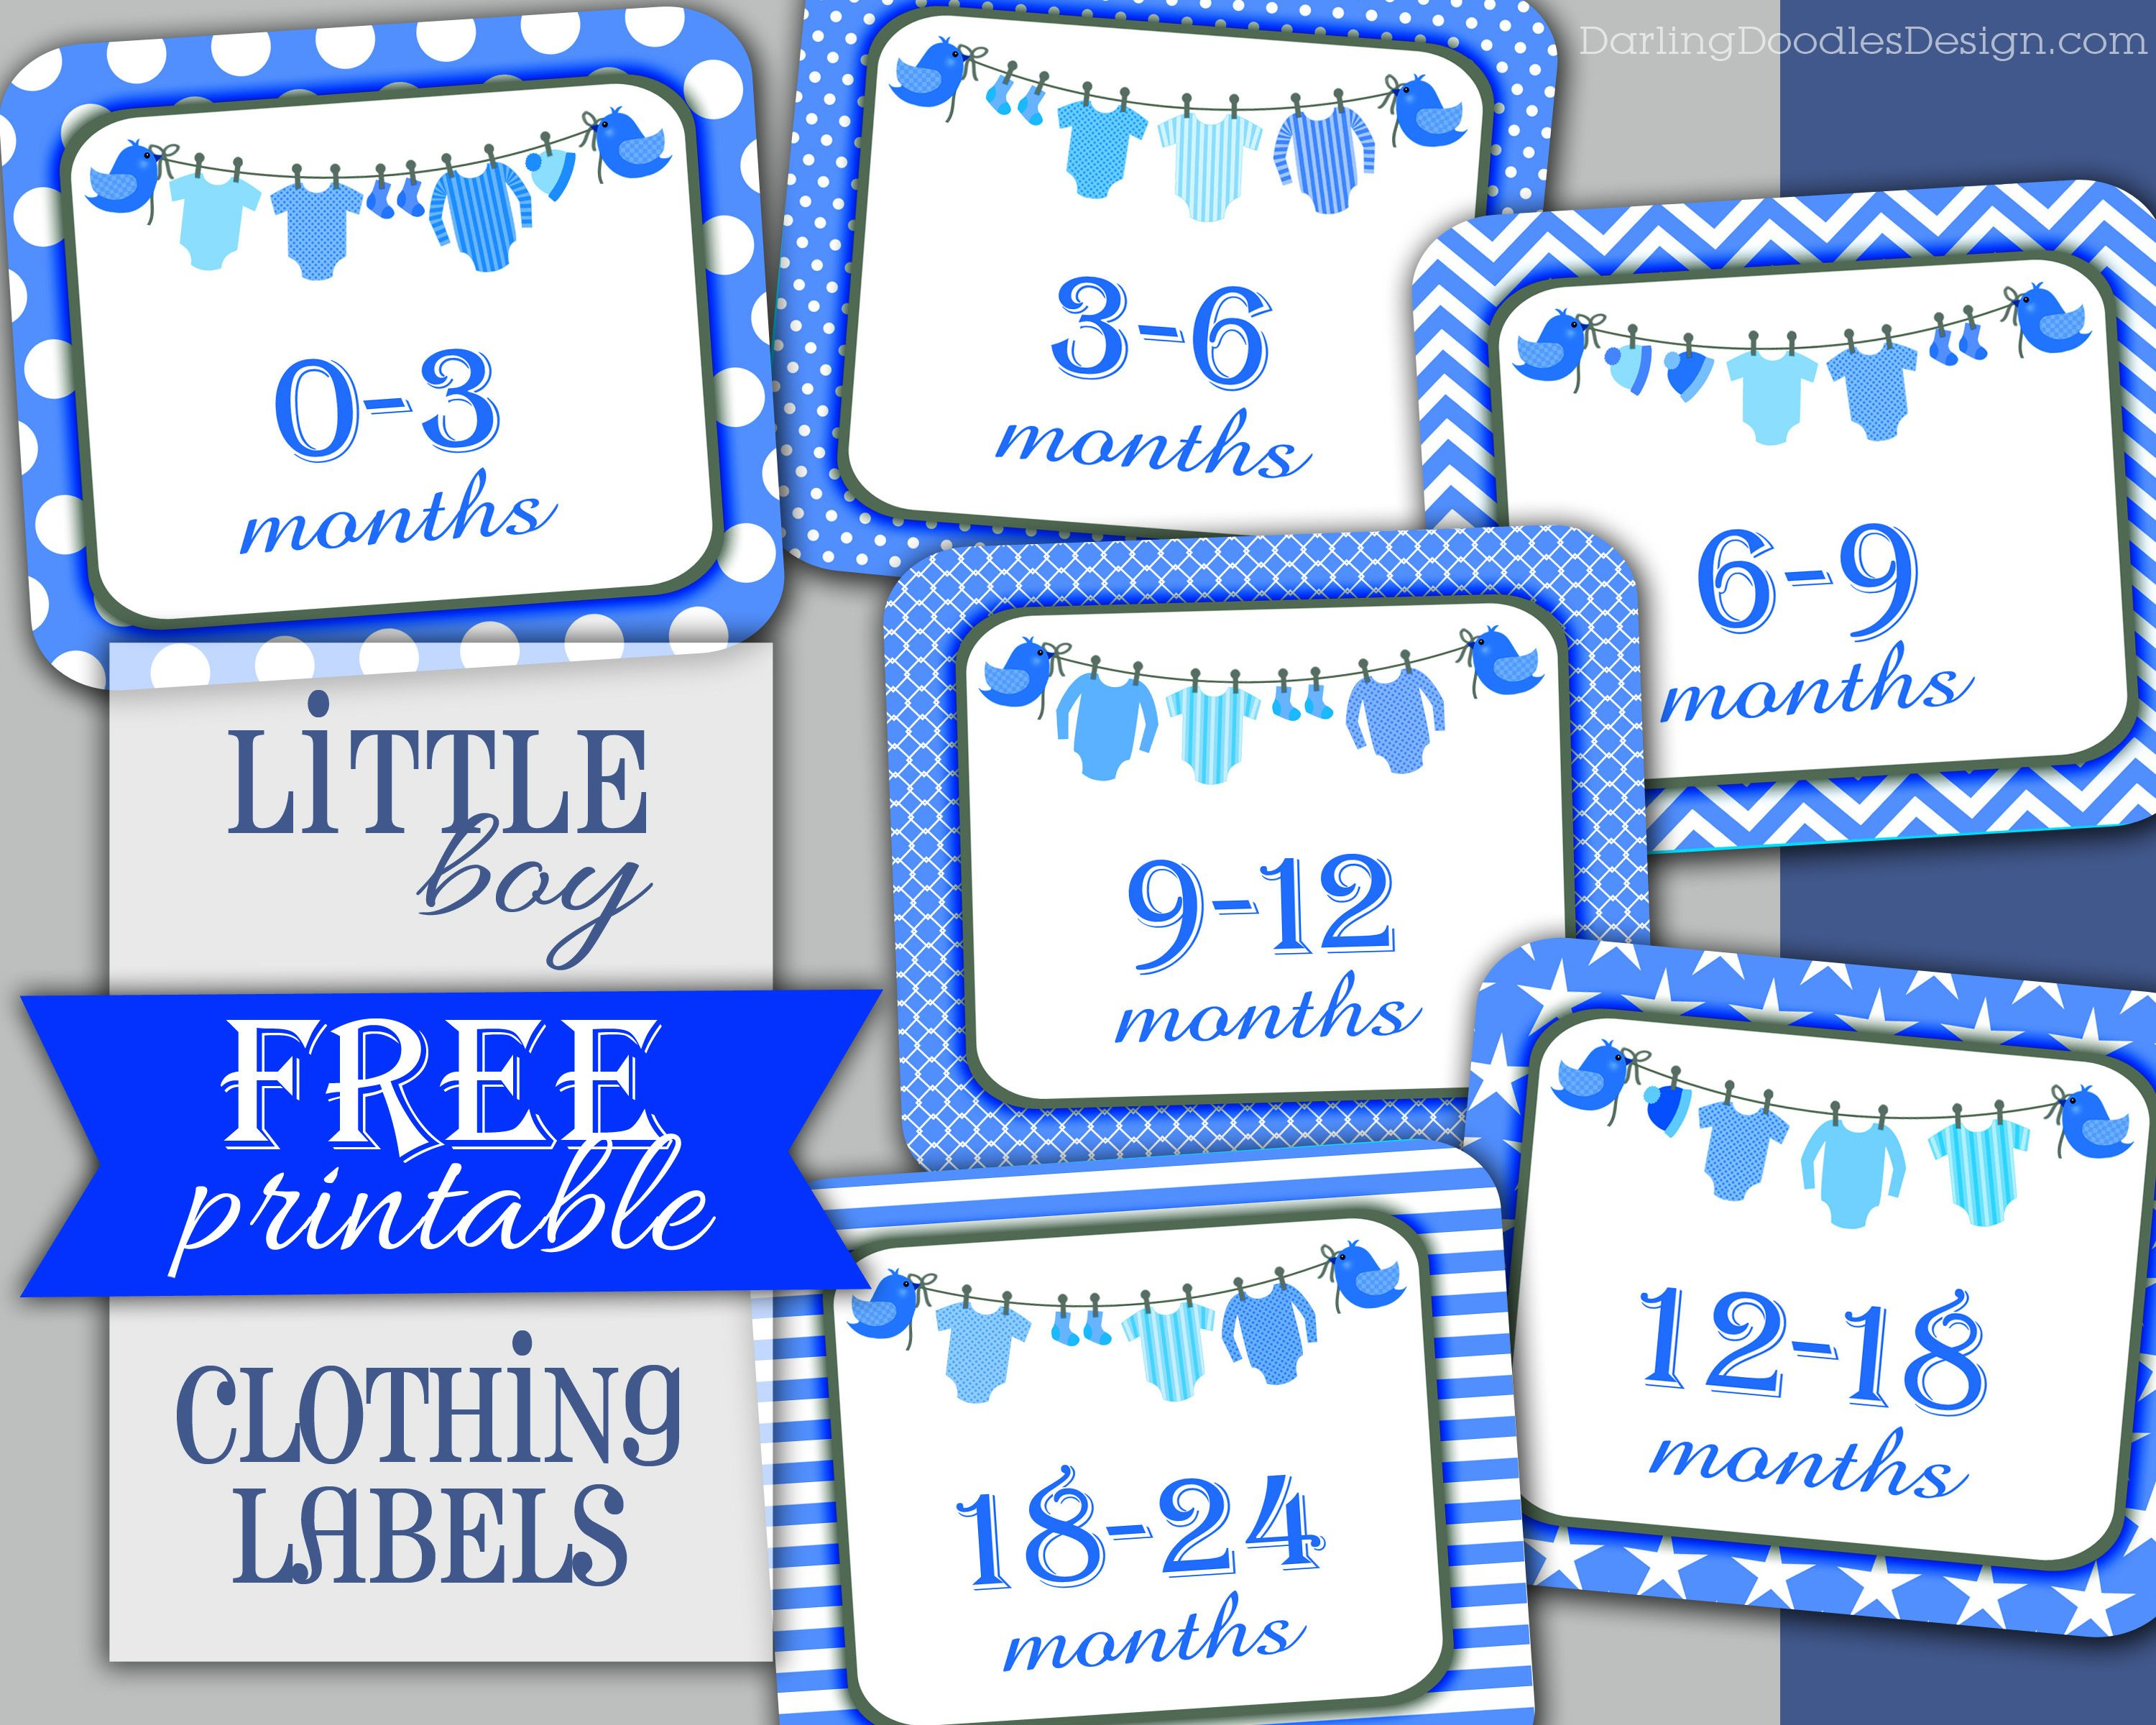 Little Boy Clothing Labels Free Printable